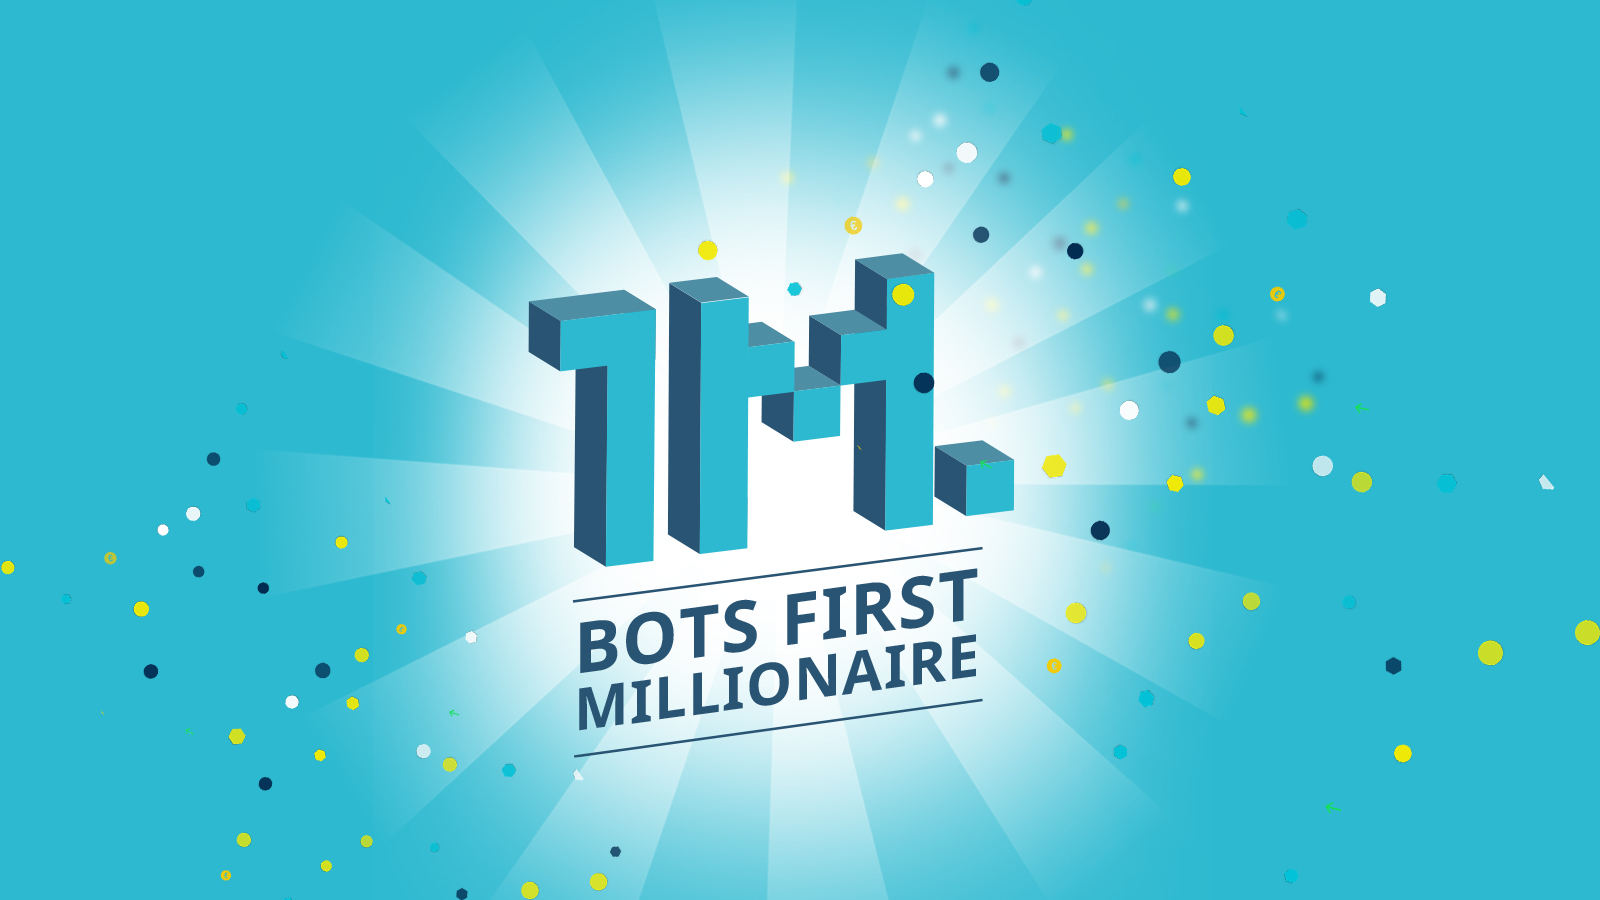 The first BOTS millionaire is a fact